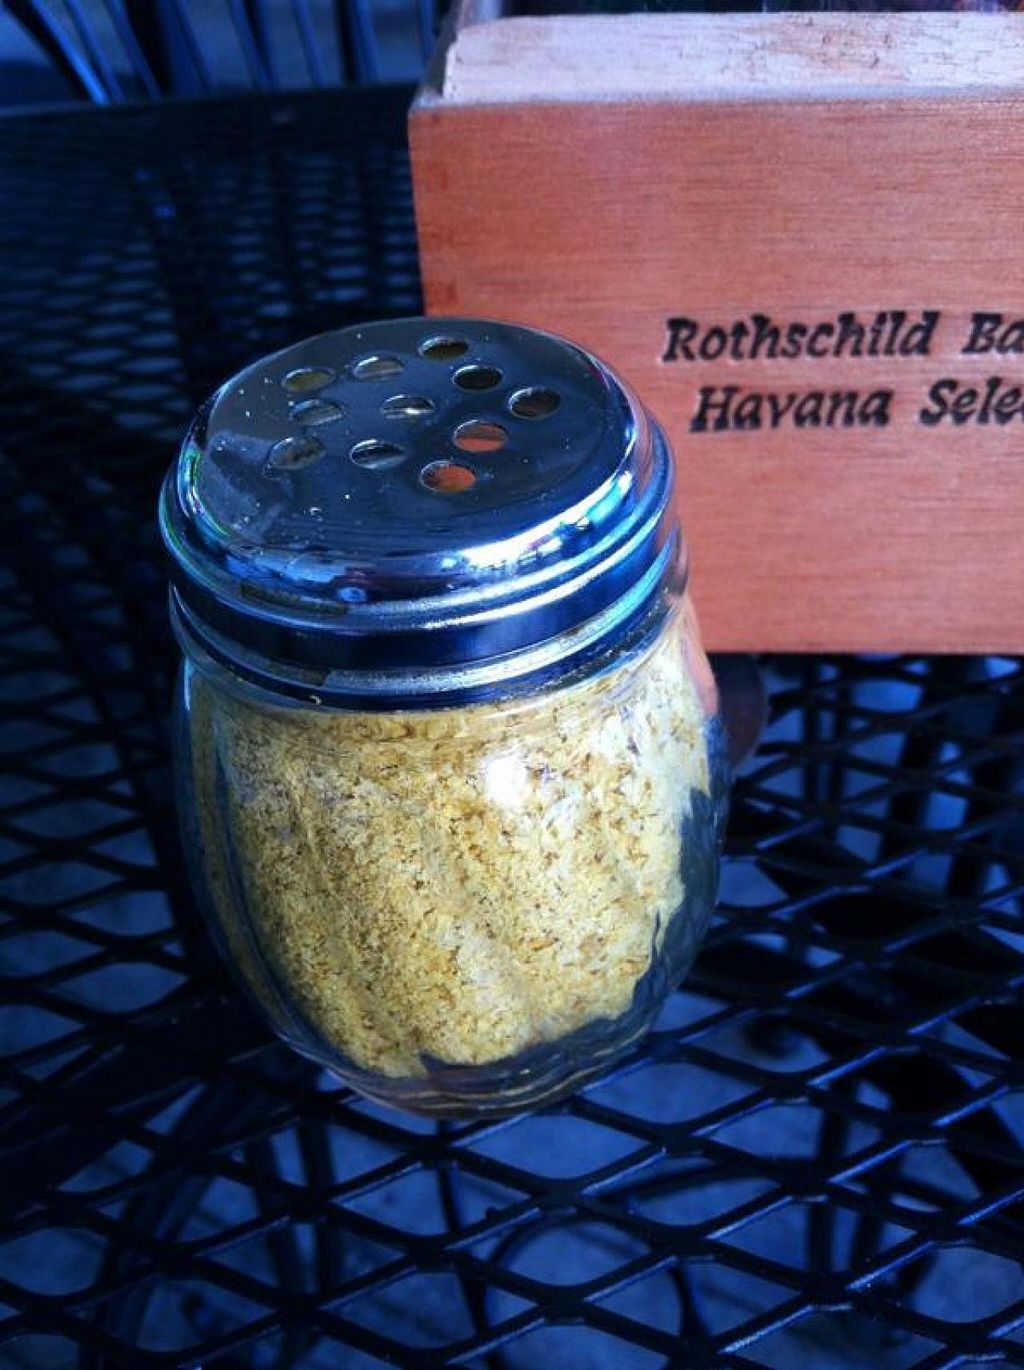 """Photo of Devine Pastabilities  by <a href=""""/members/profile/Meggie%20and%20Ben"""">Meggie and Ben</a> <br/>Nutritional yeast shaker! <br/> December 1, 2014  - <a href='/contact/abuse/image/4986/86996'>Report</a>"""